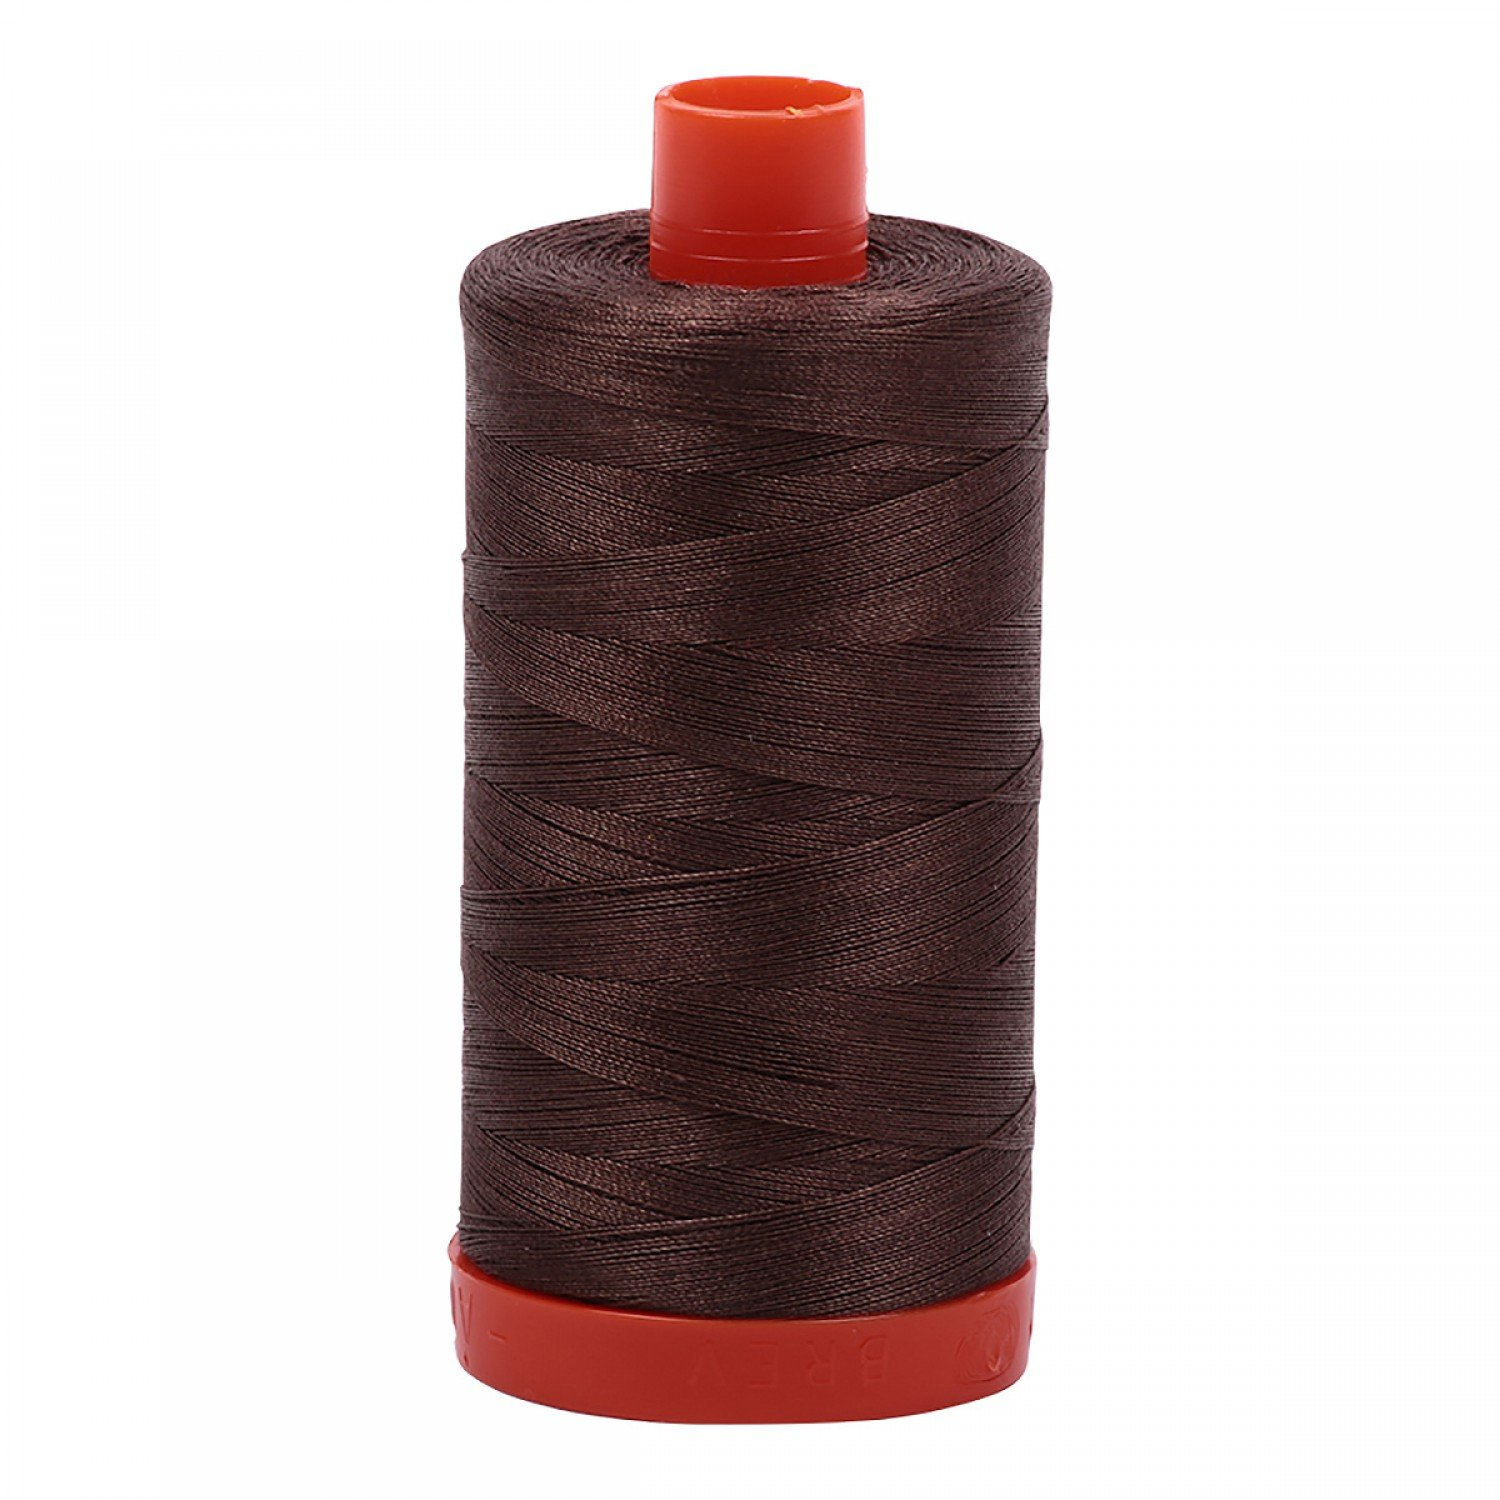 Aurifil Mako Cotton Thread 50 wt 1422 yds 1140 Bark